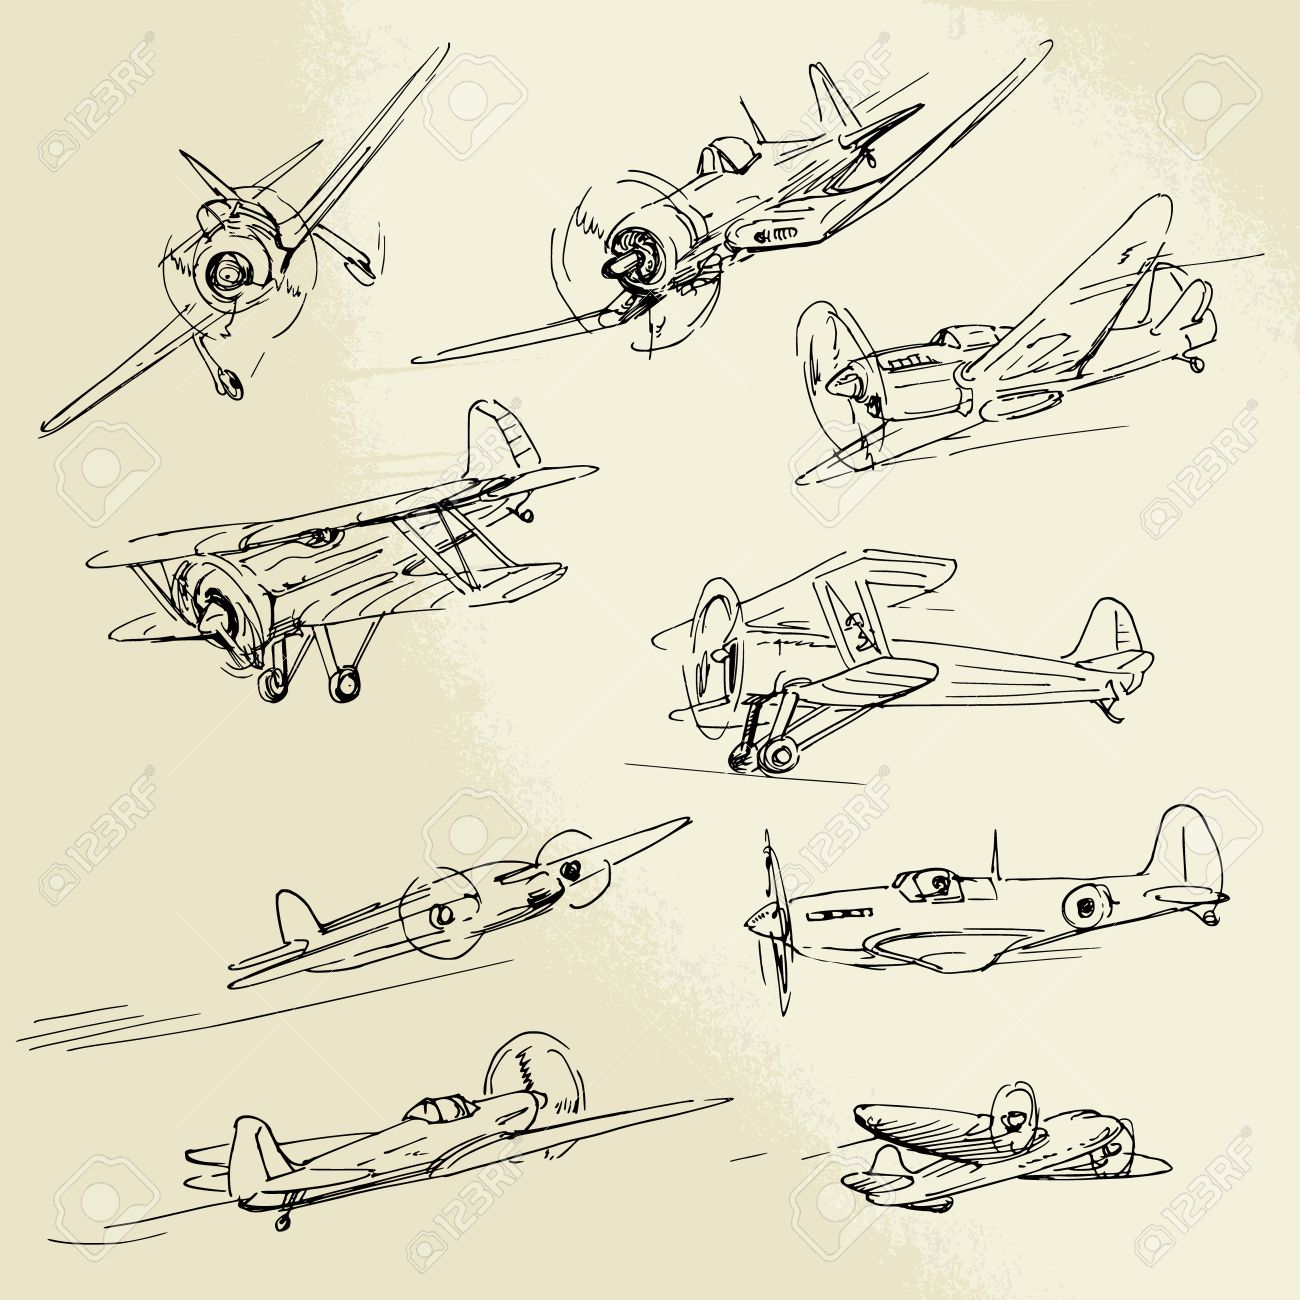 1300x1300 Aviones Antiguos Tattos, Aviation And Planes